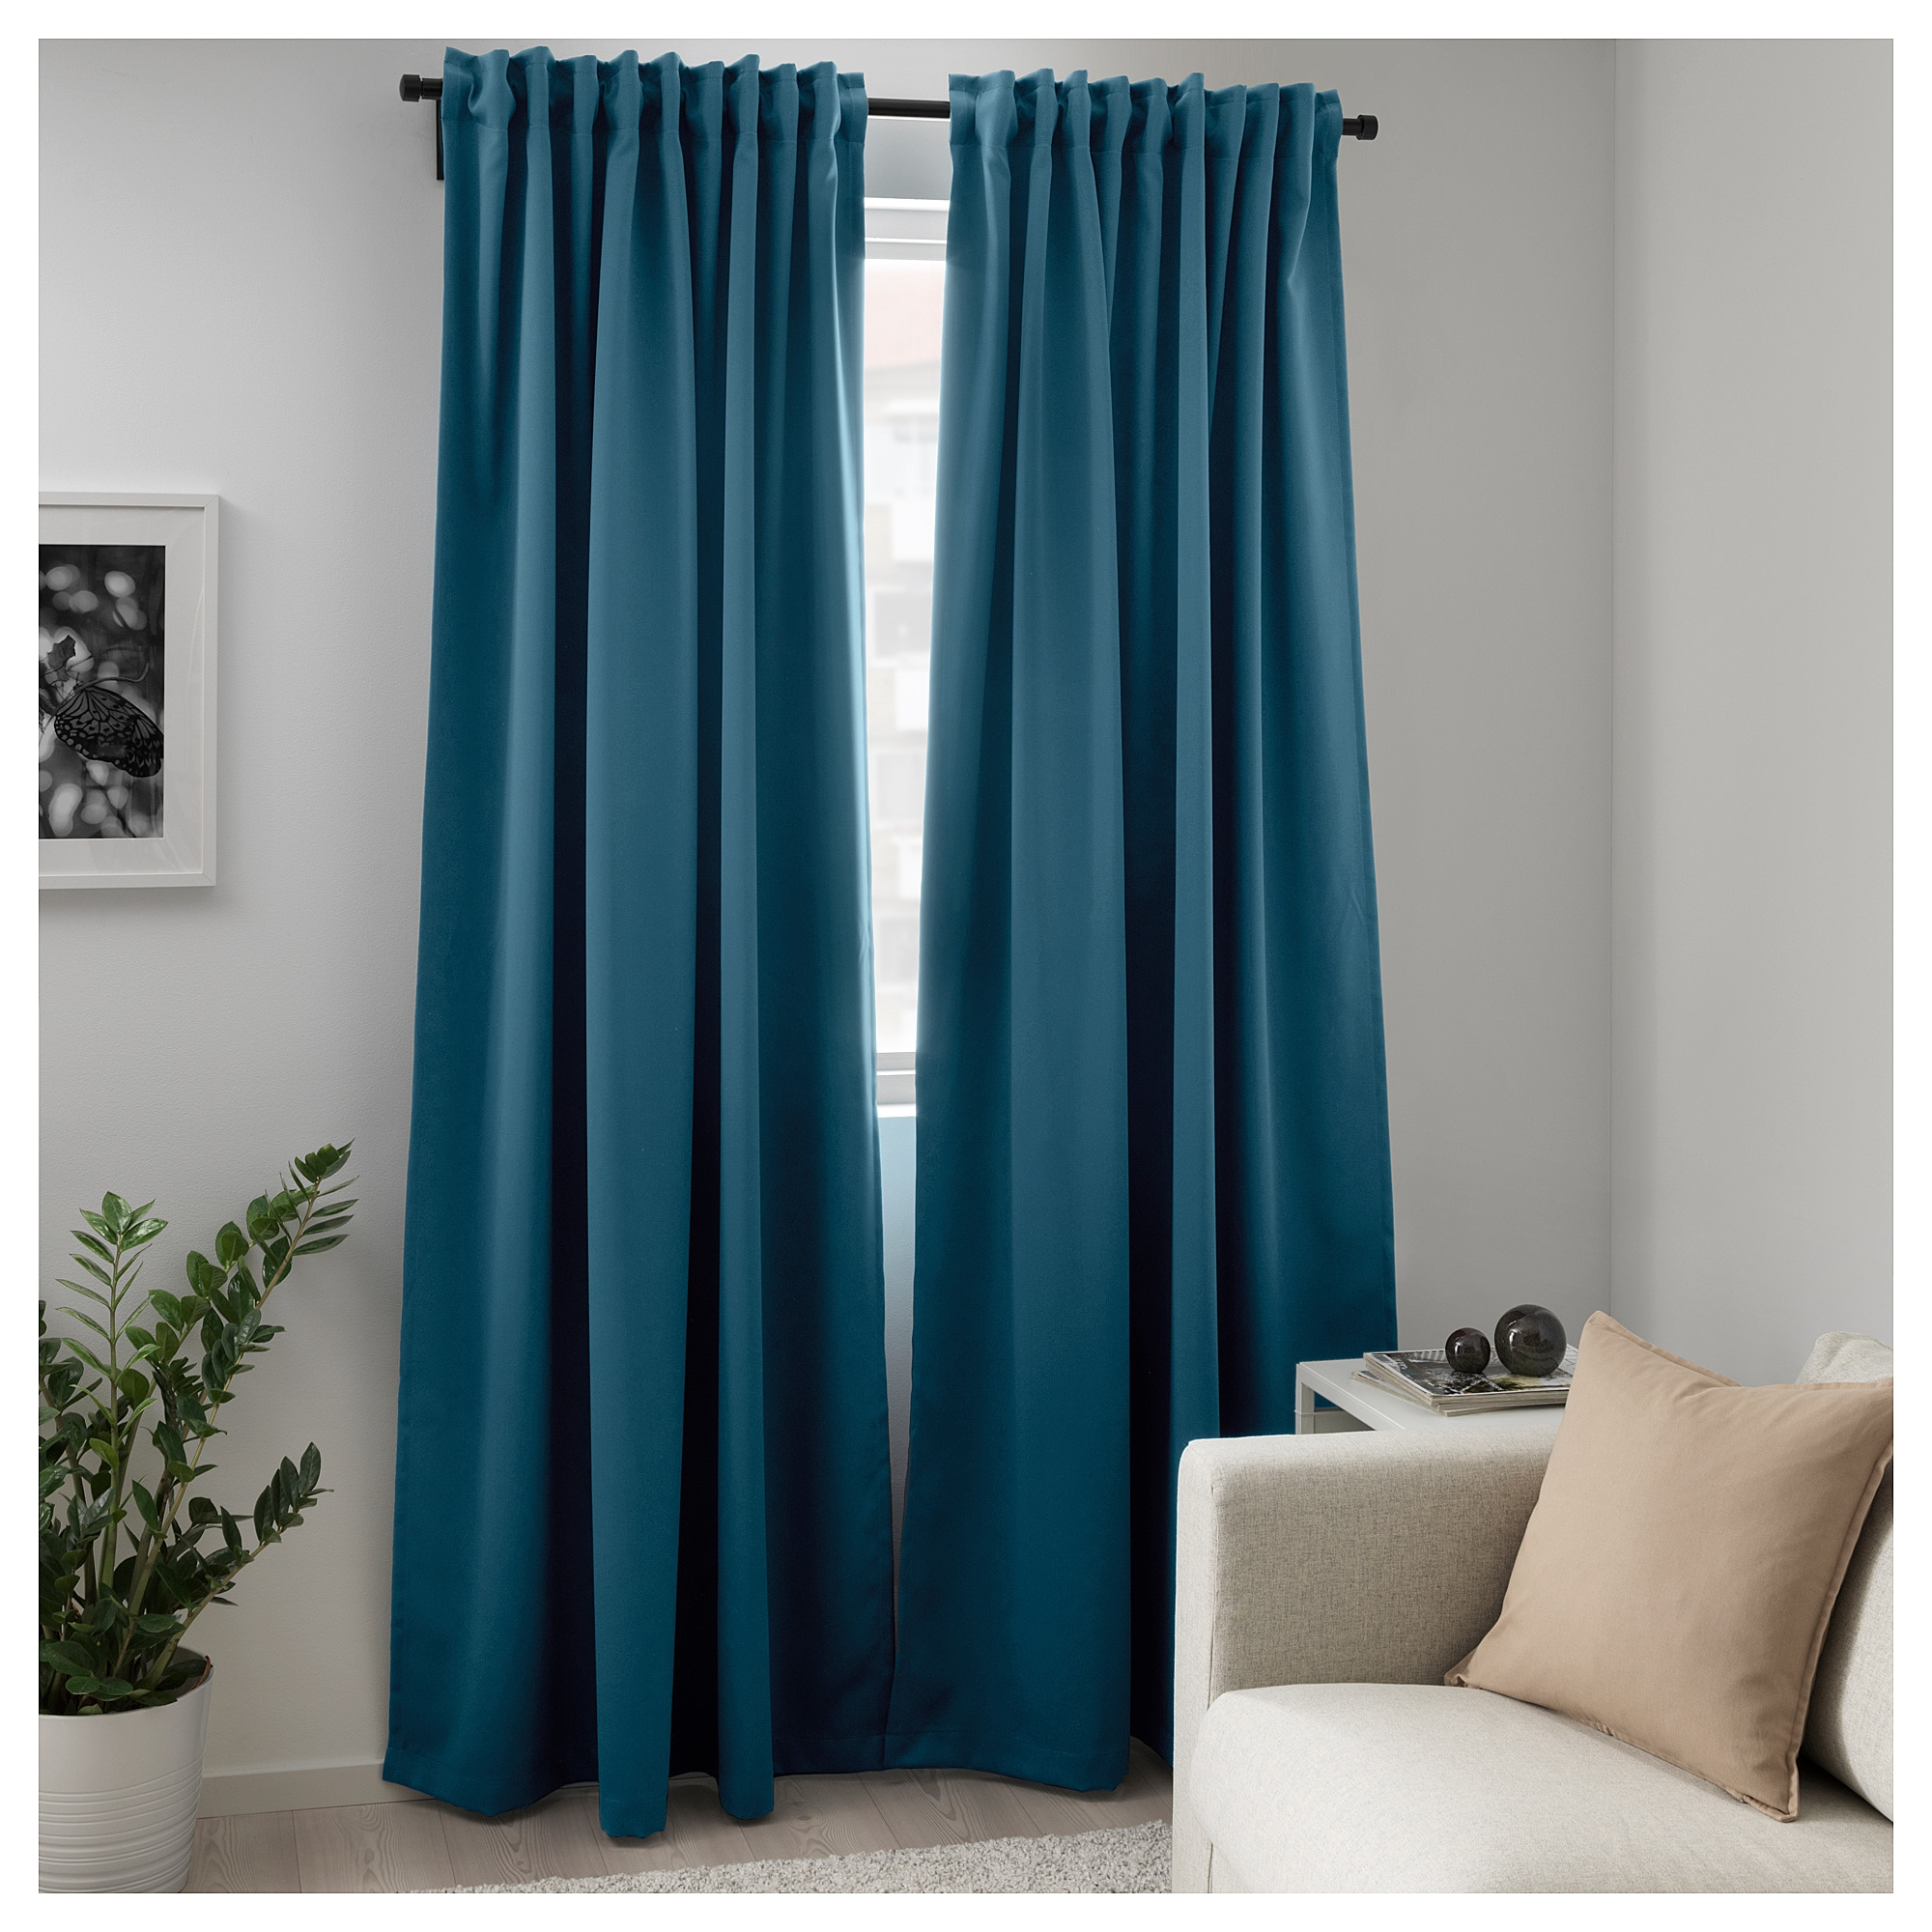 Window Blinds Amp Curtains Treatment In Nyc Furniture